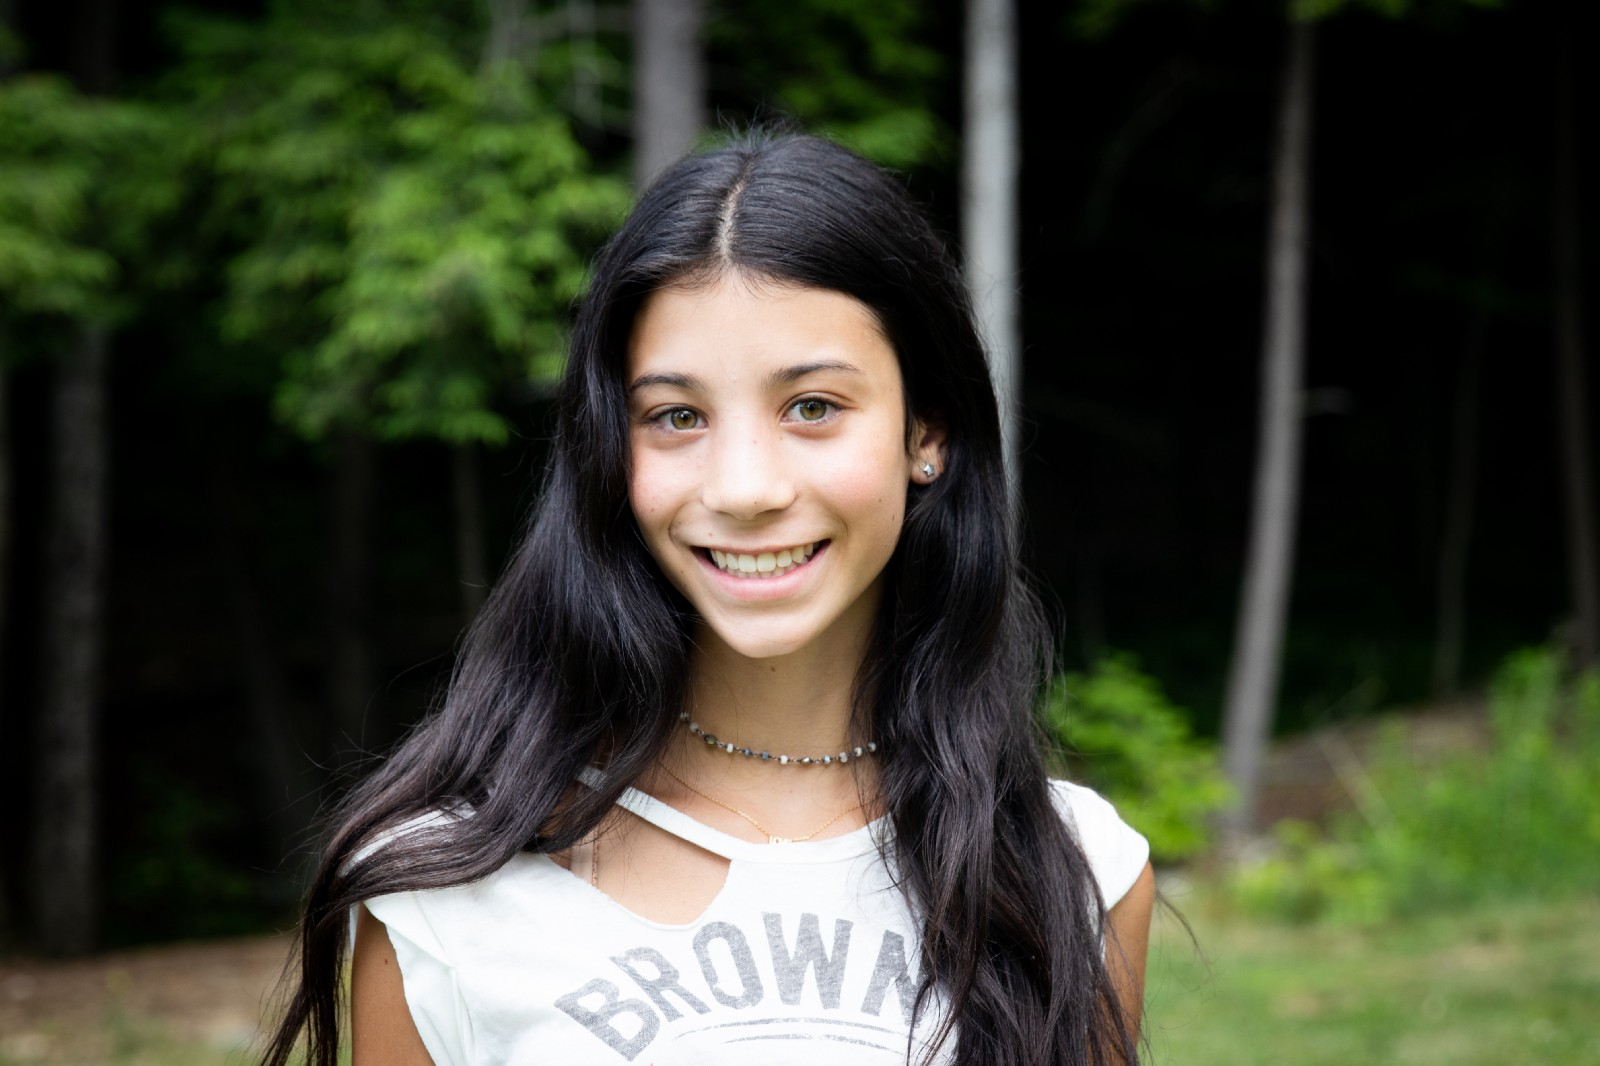 Unmasked — The Power of No Makeup and How it Builds Confidence in Young Girls at Sleepaway Summer Camp.